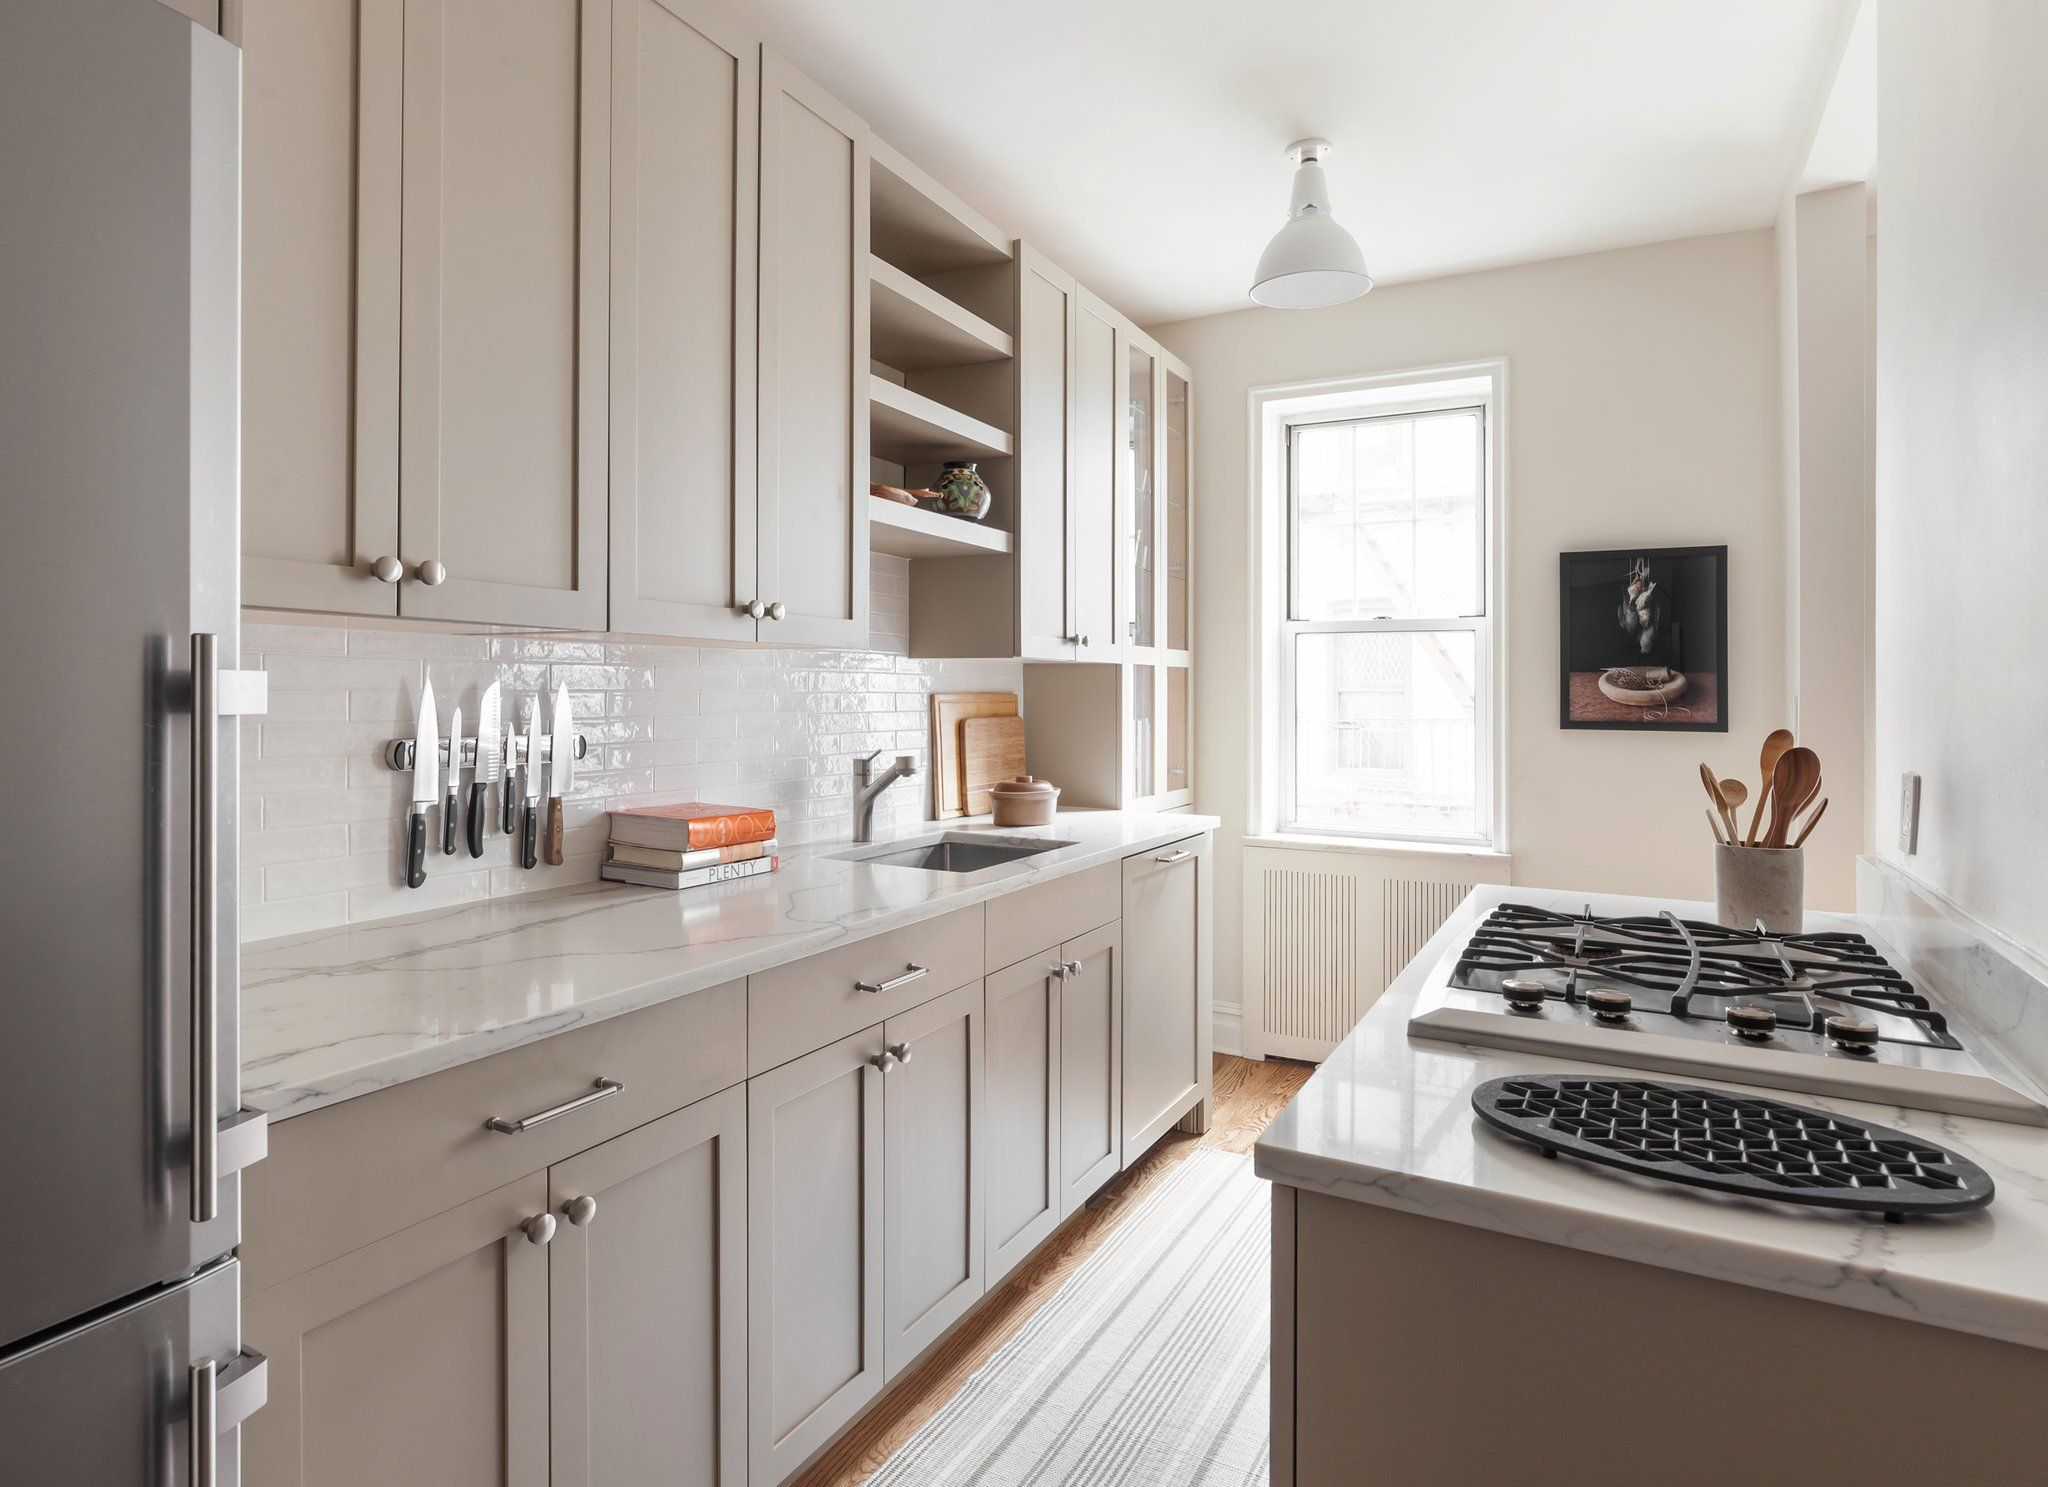 On the Market in New York City | City, Small spaces and Condos